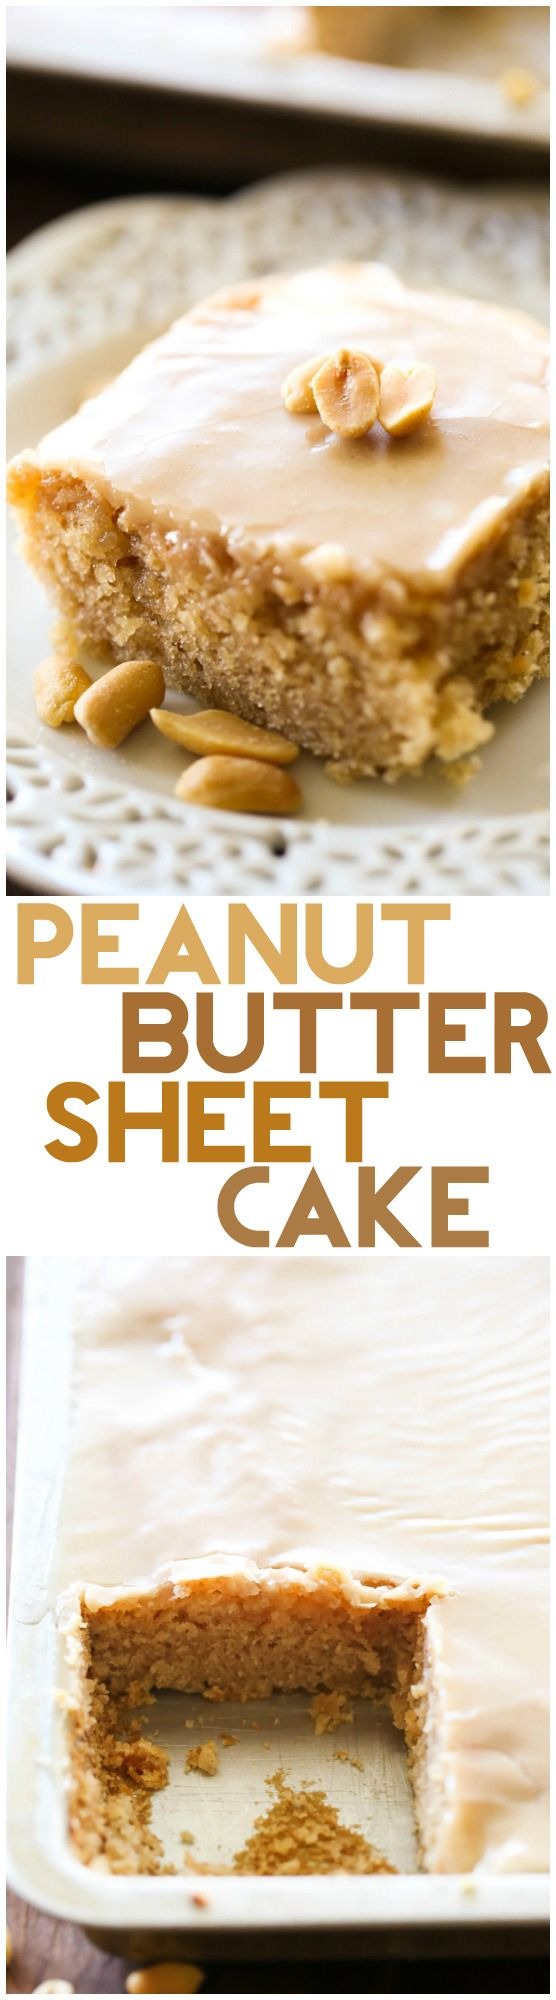 Peanut Butter Sheet Cake... If you love peanut butter, then you absolutely need to try this MELT-IN-YOUR-MOUTH Peanut Butter Sheet Cake. It is truly amazing!